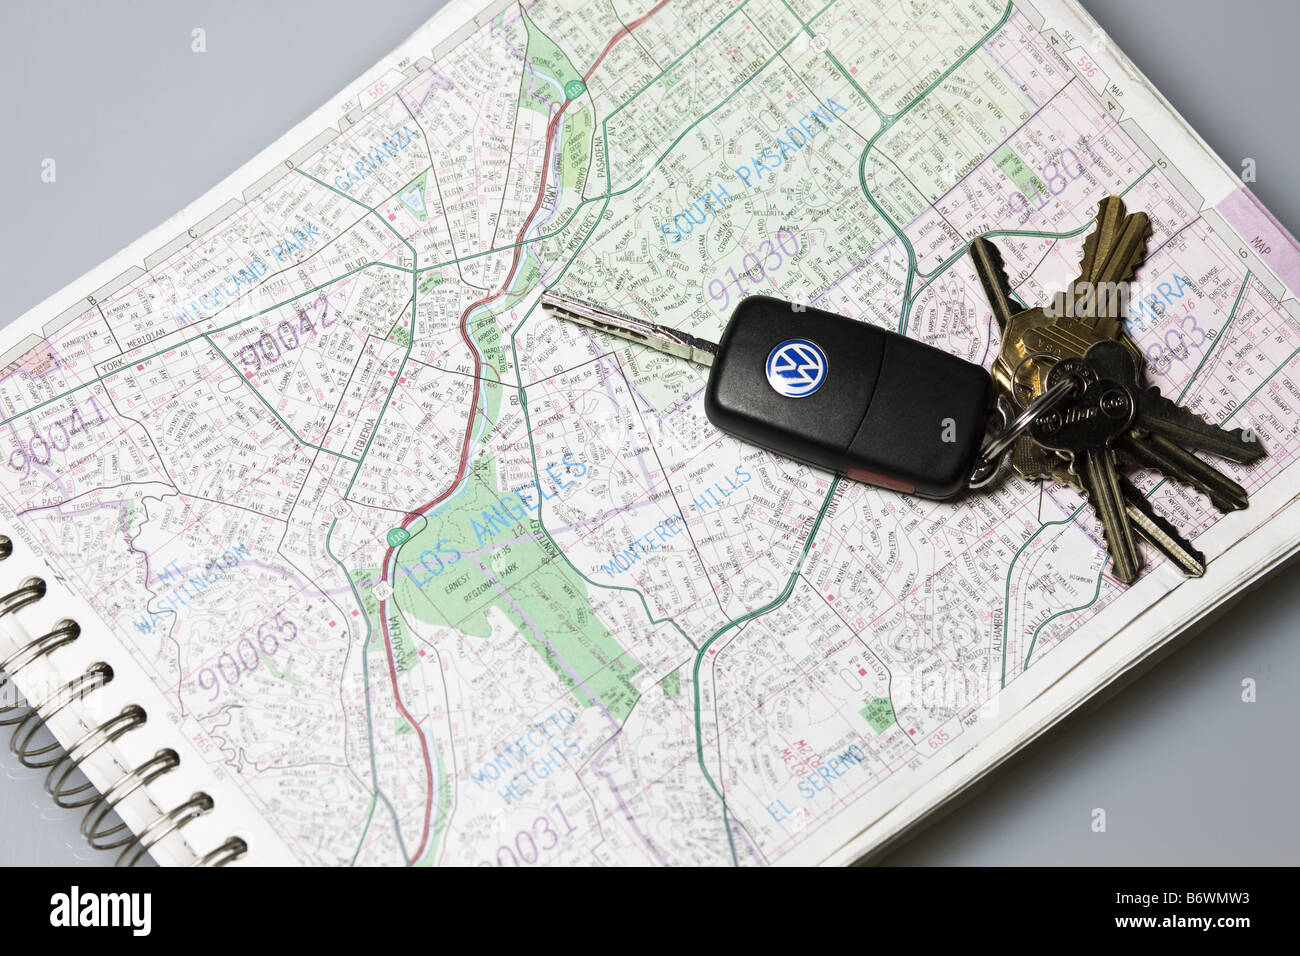 Keys on page of Thomas guide map of Los Angeles Stock Photo ... Thomas Guide Map on